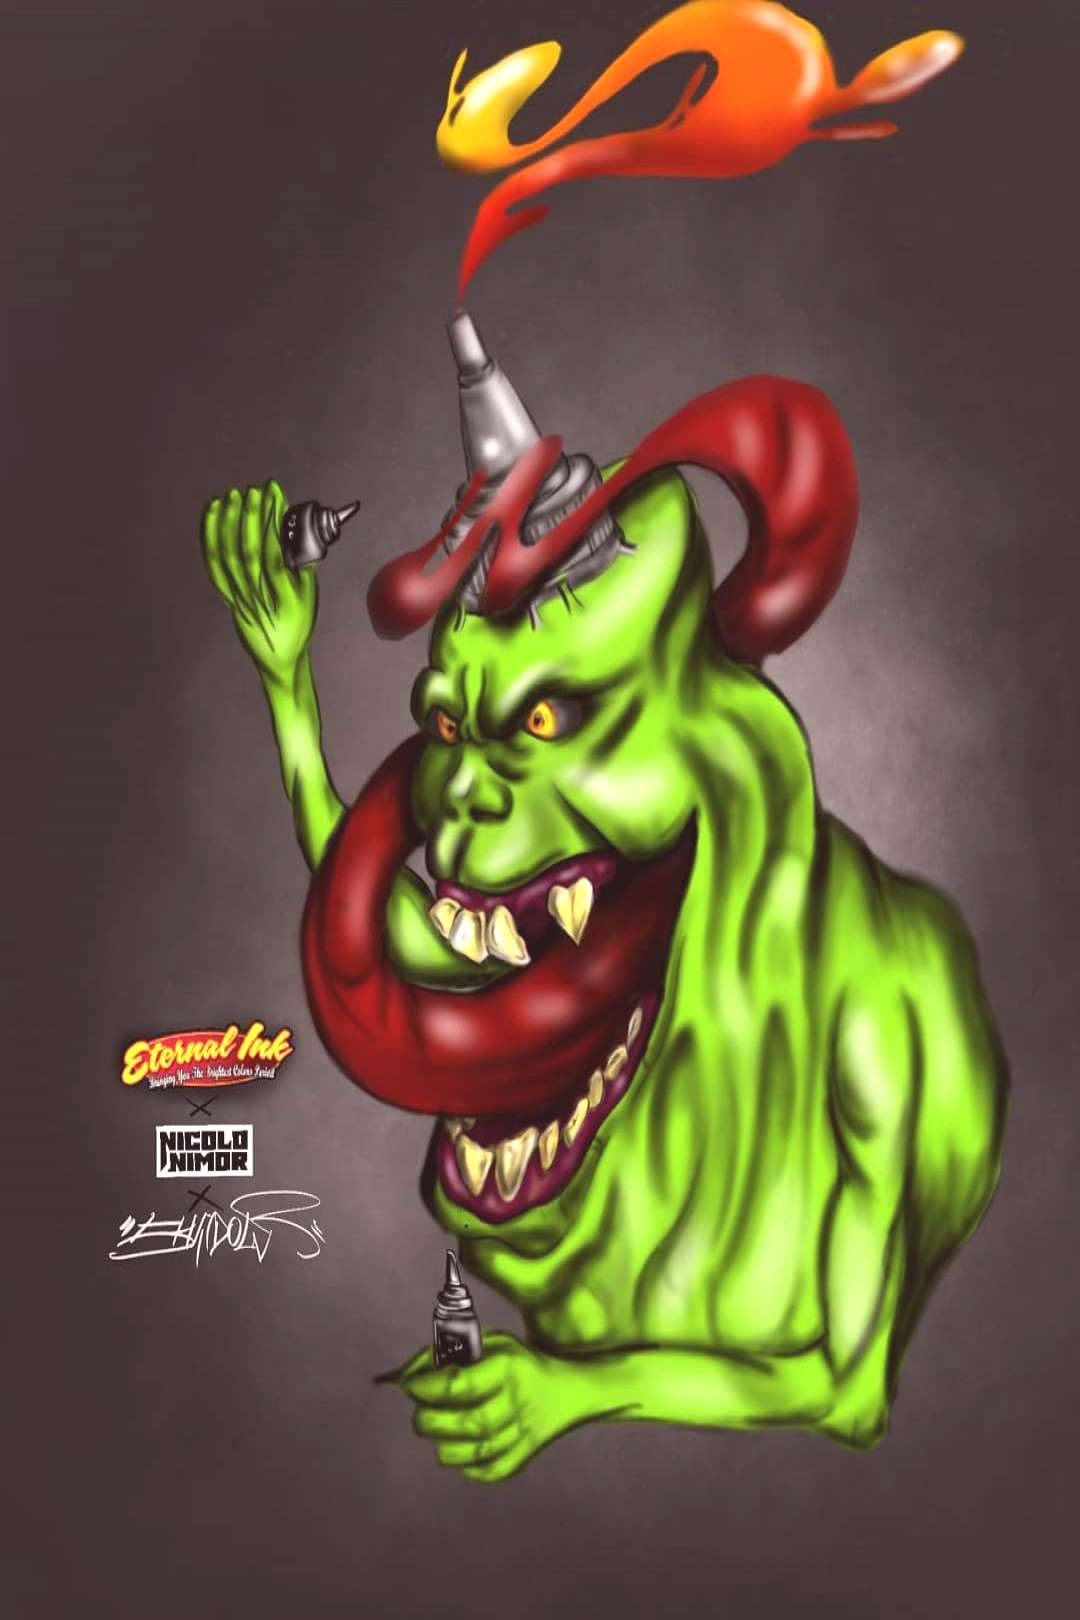 Slimer ink. Thanks @eternalink @nicolonimor for this amazing contest.??